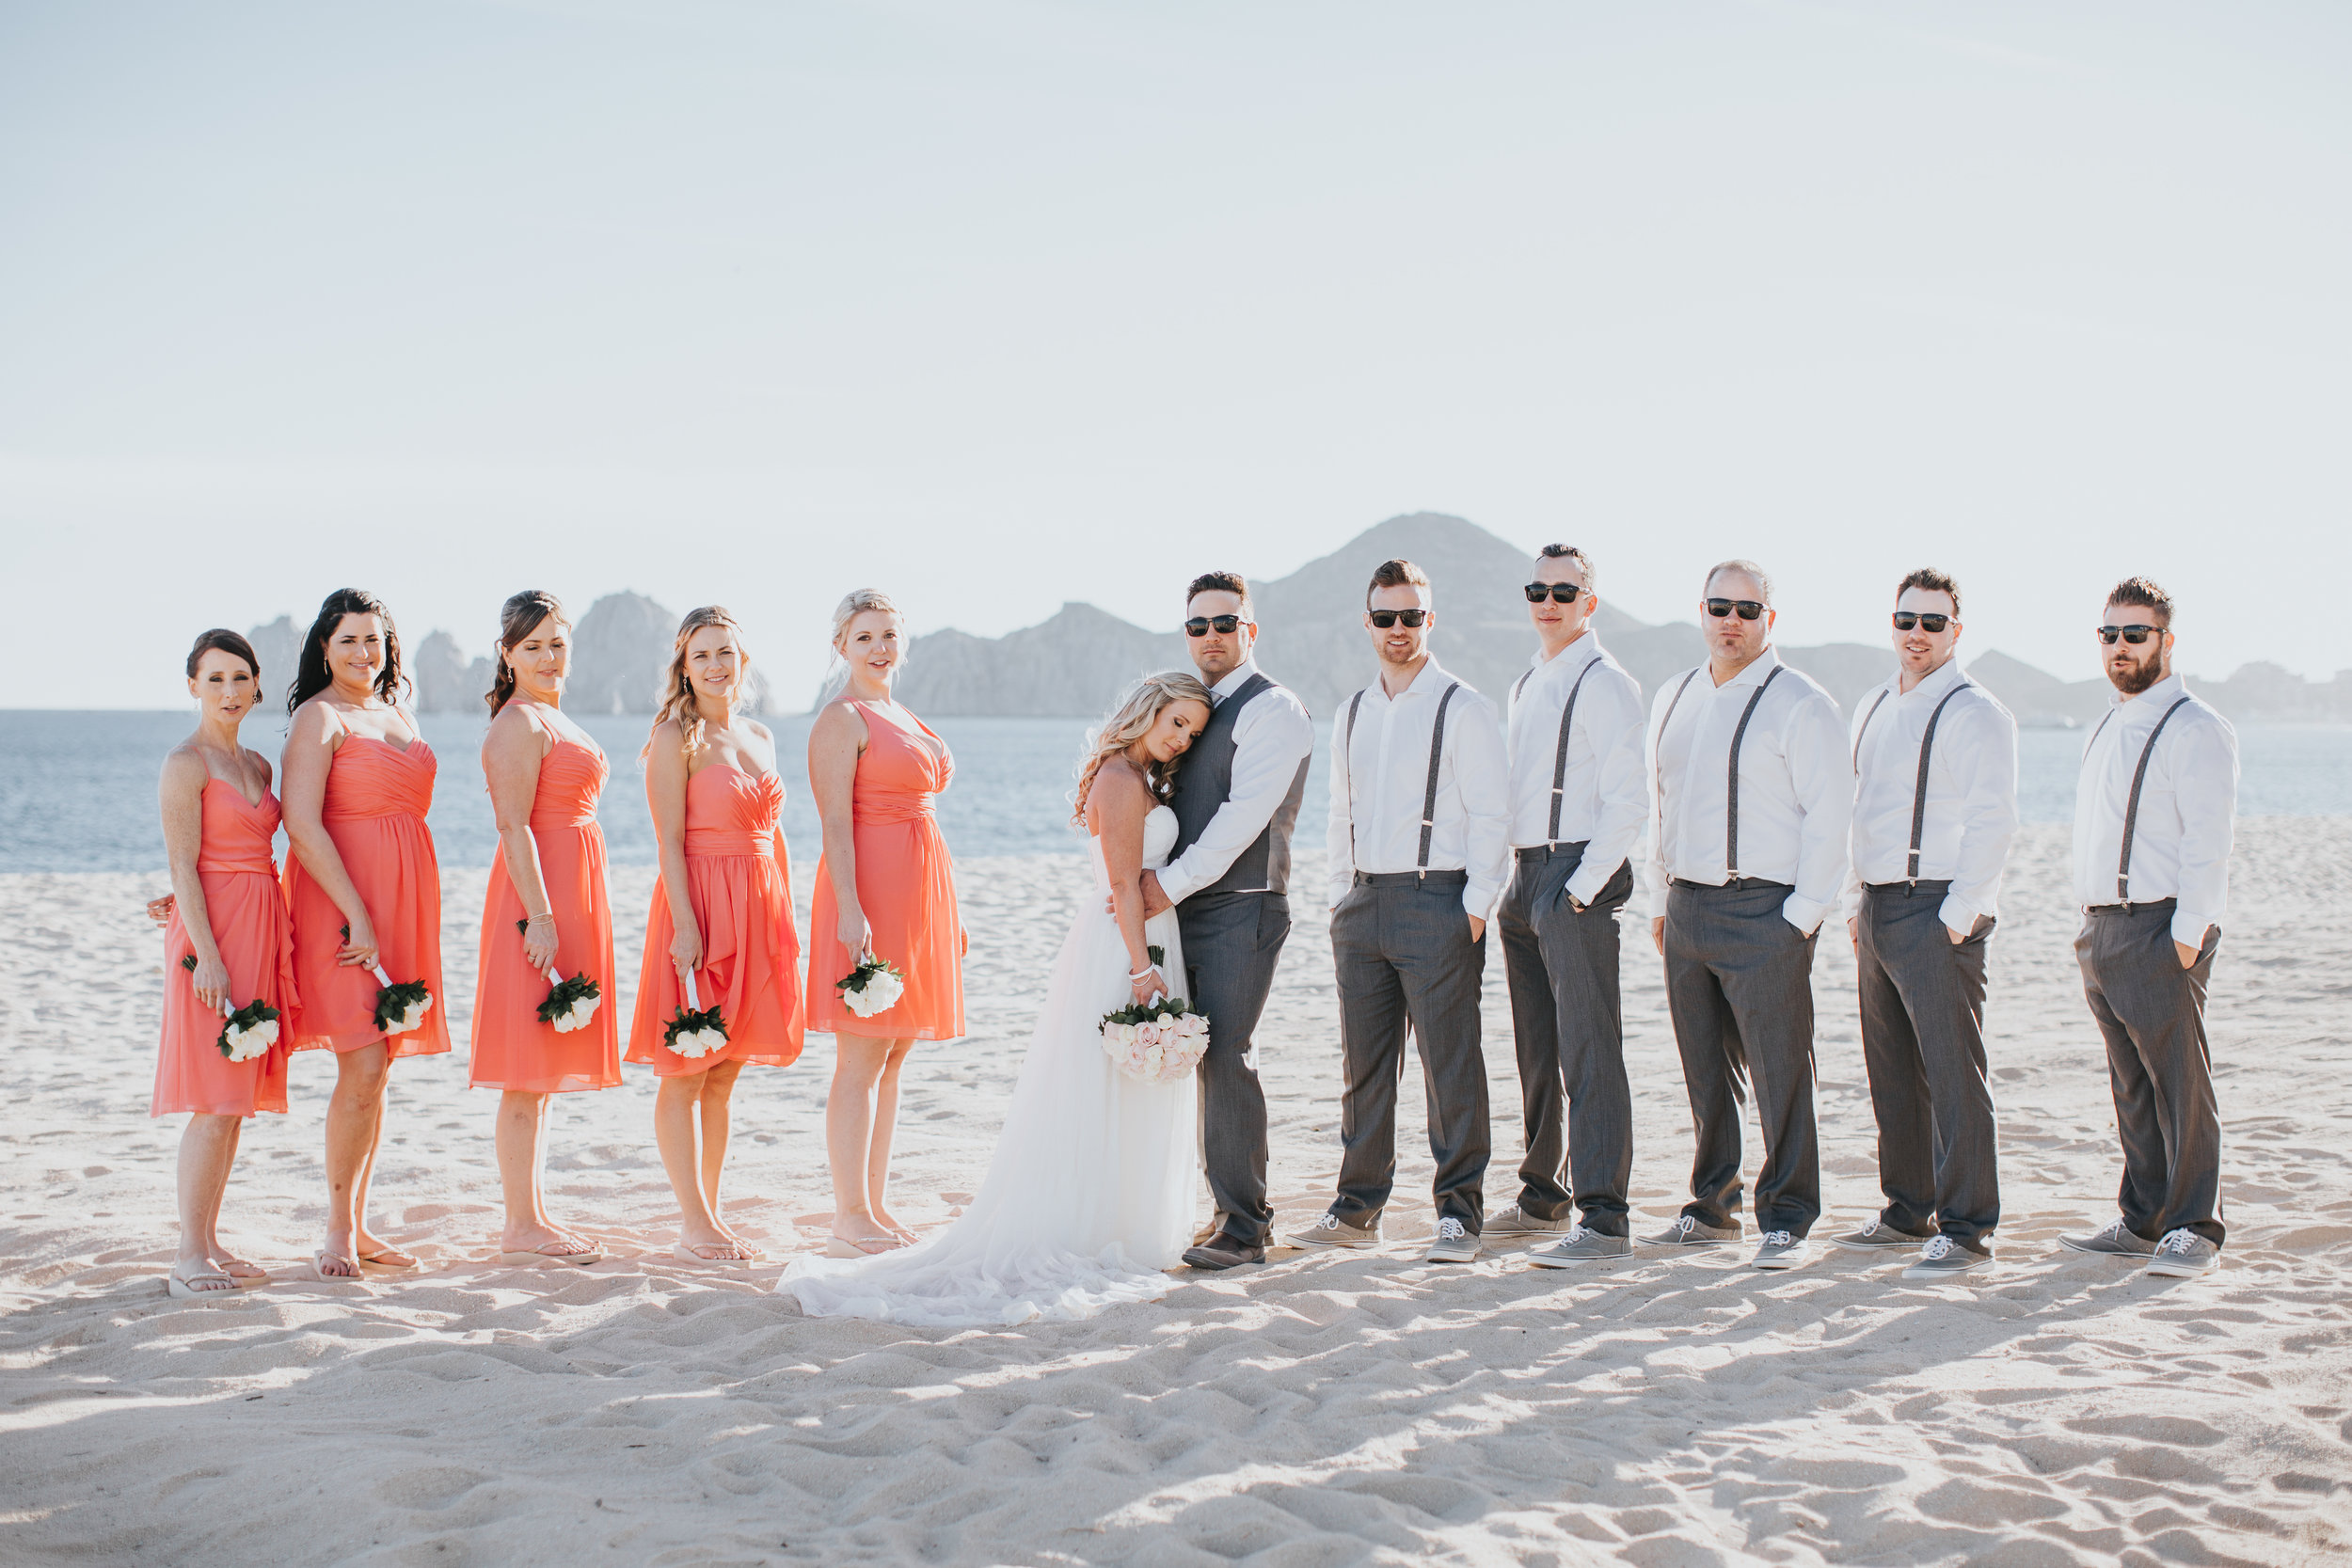 Ashleynickdestinationweddingmexicorivkahphotography-5.jpg